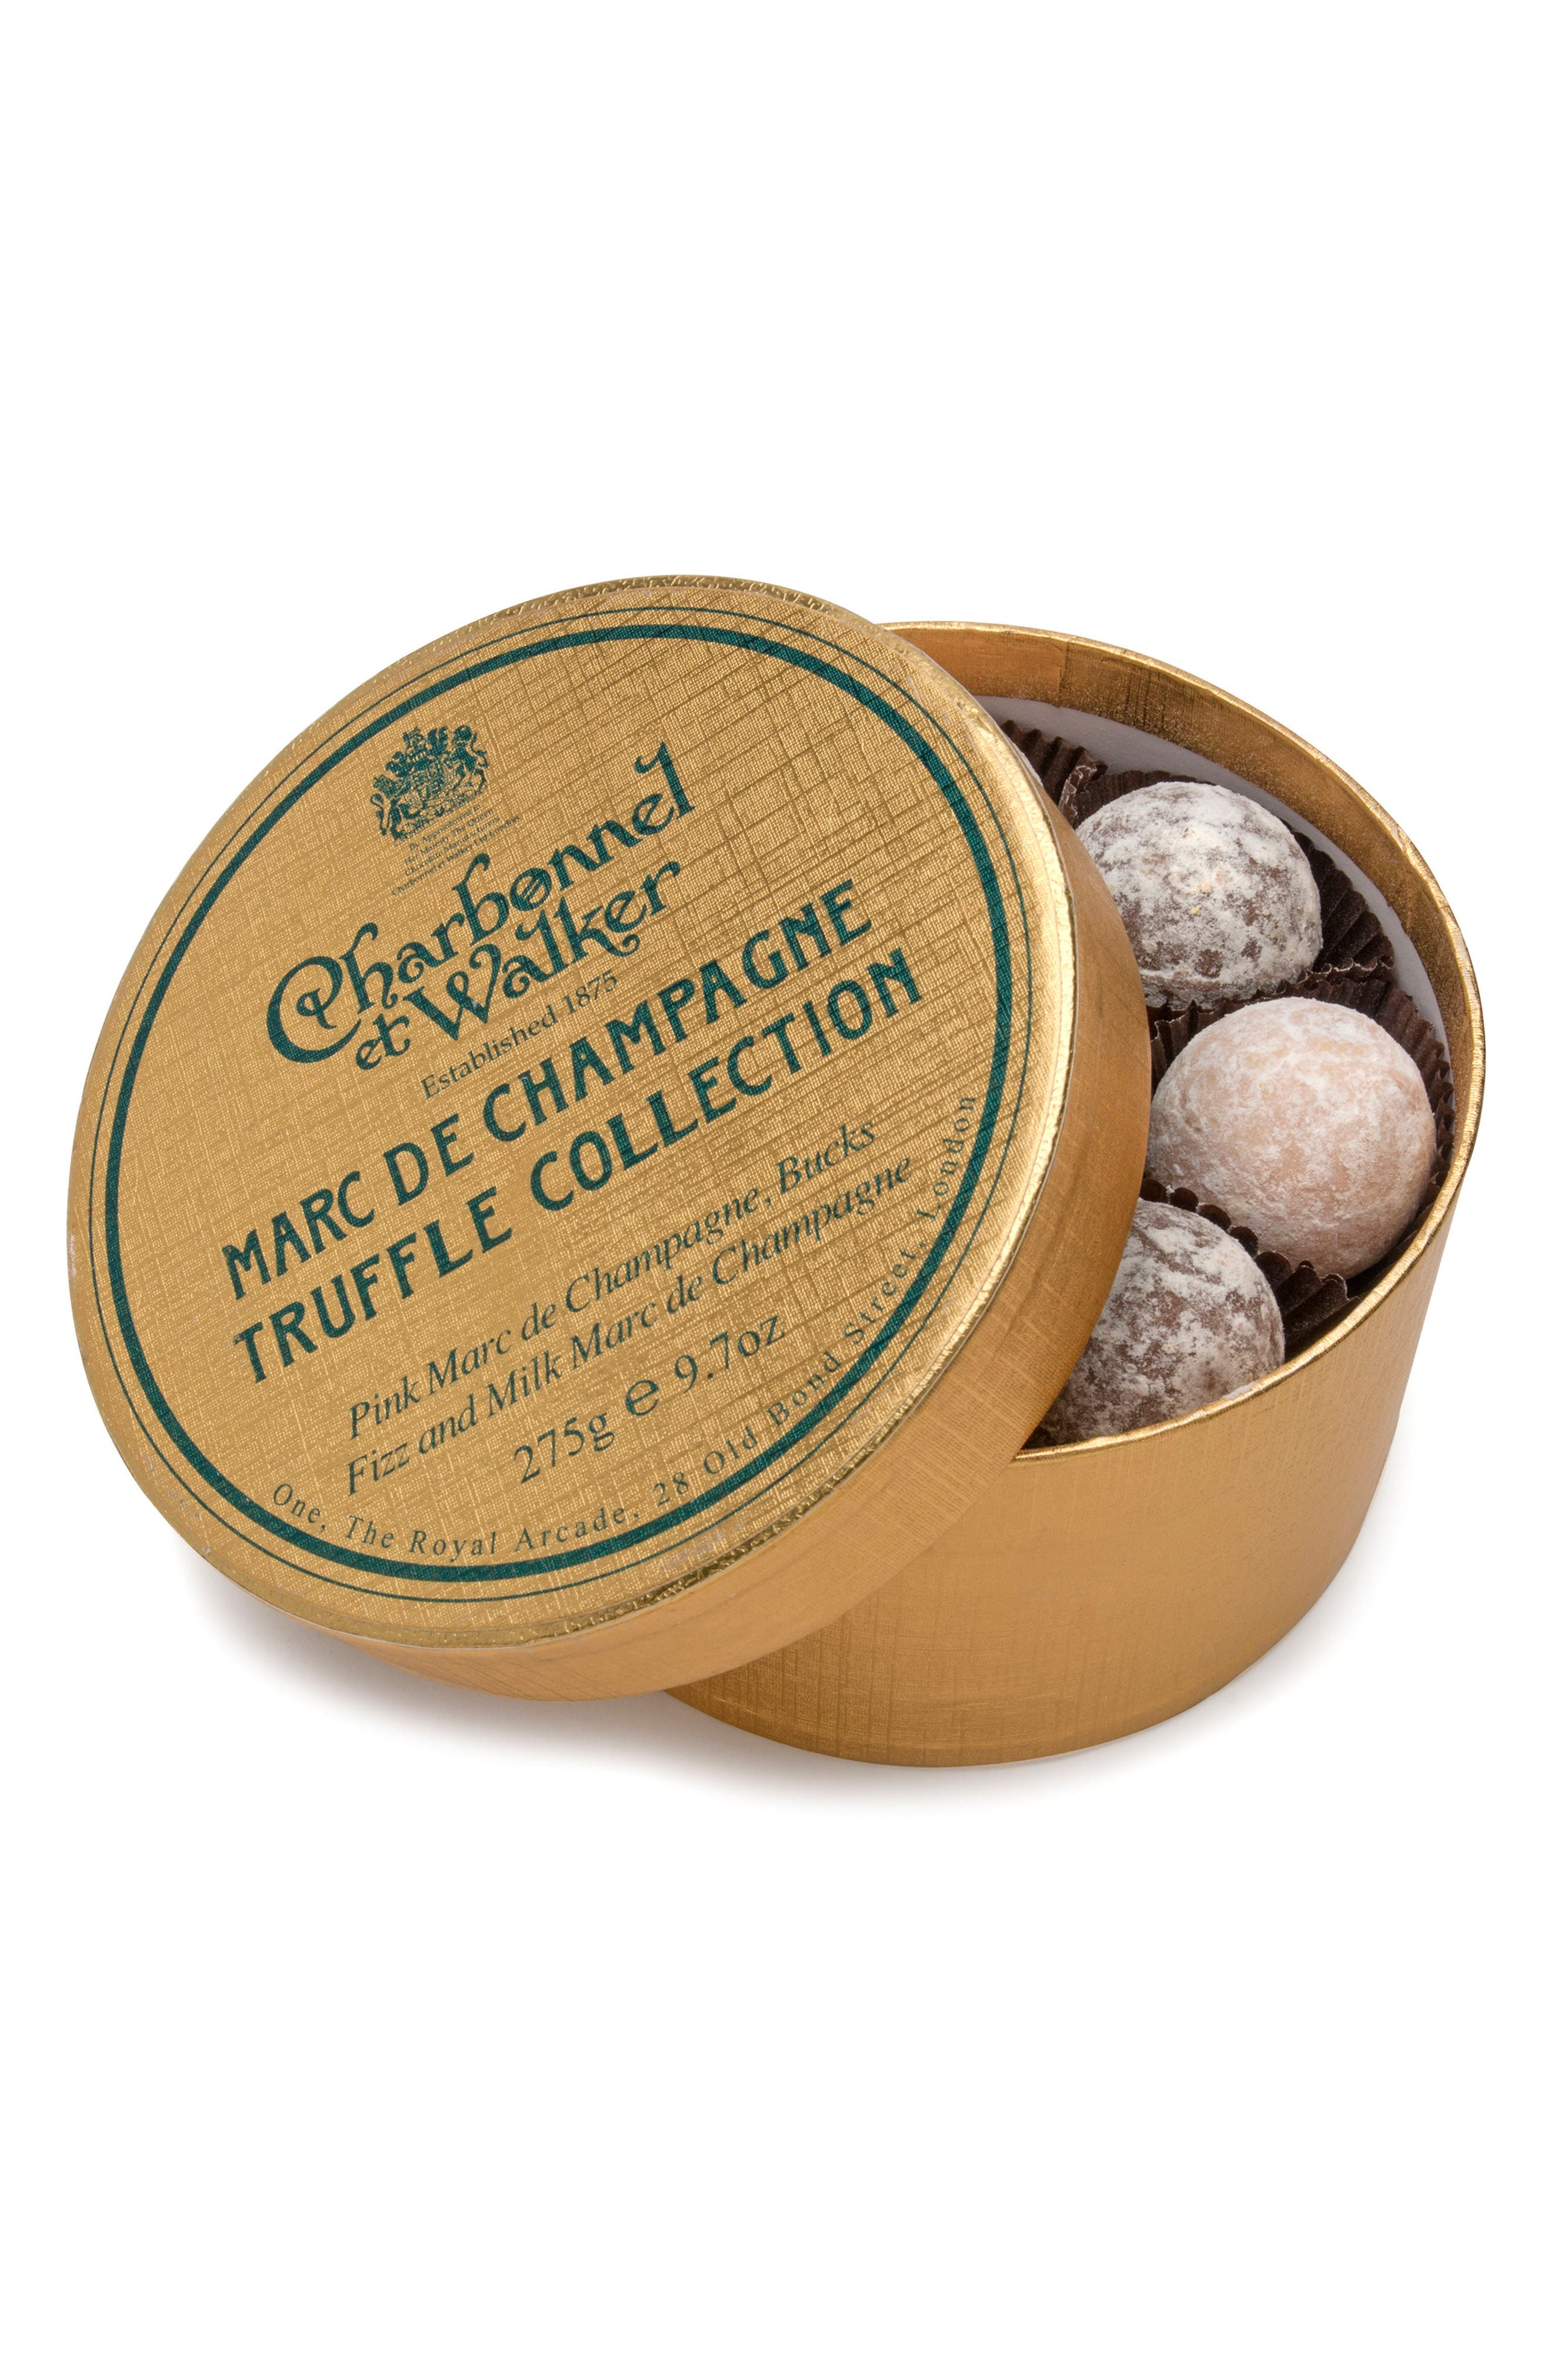 Alternate Image 1 Selected - Charbonnel et Walker Marc de Champagne Chocolate Truffles in Double Layer Gift Box